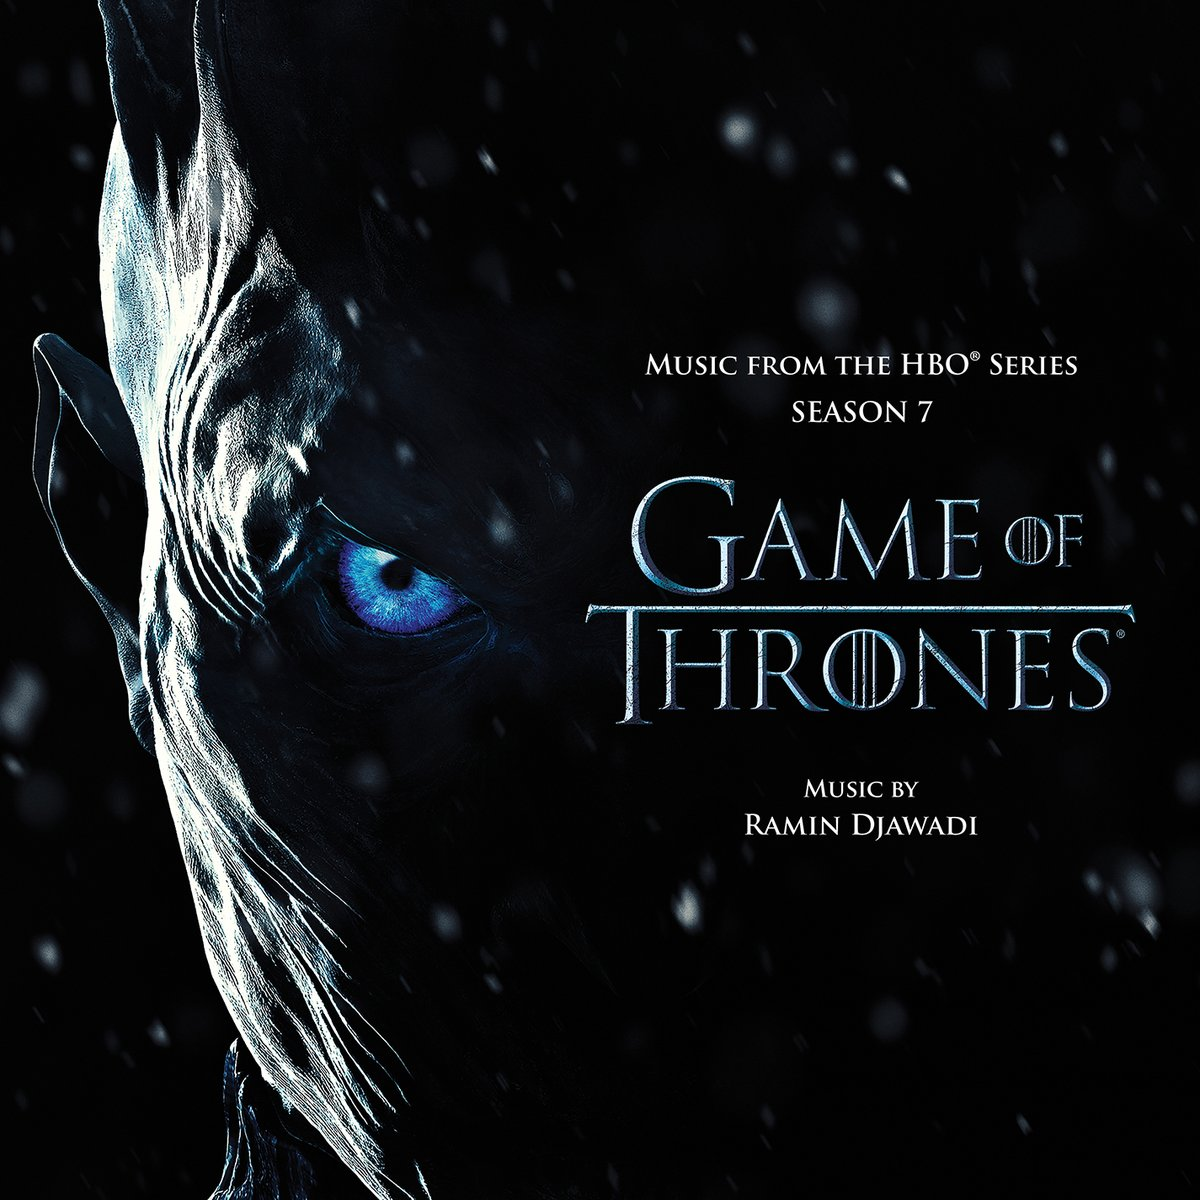 Download free game of thrones windows theme, game of thrones.